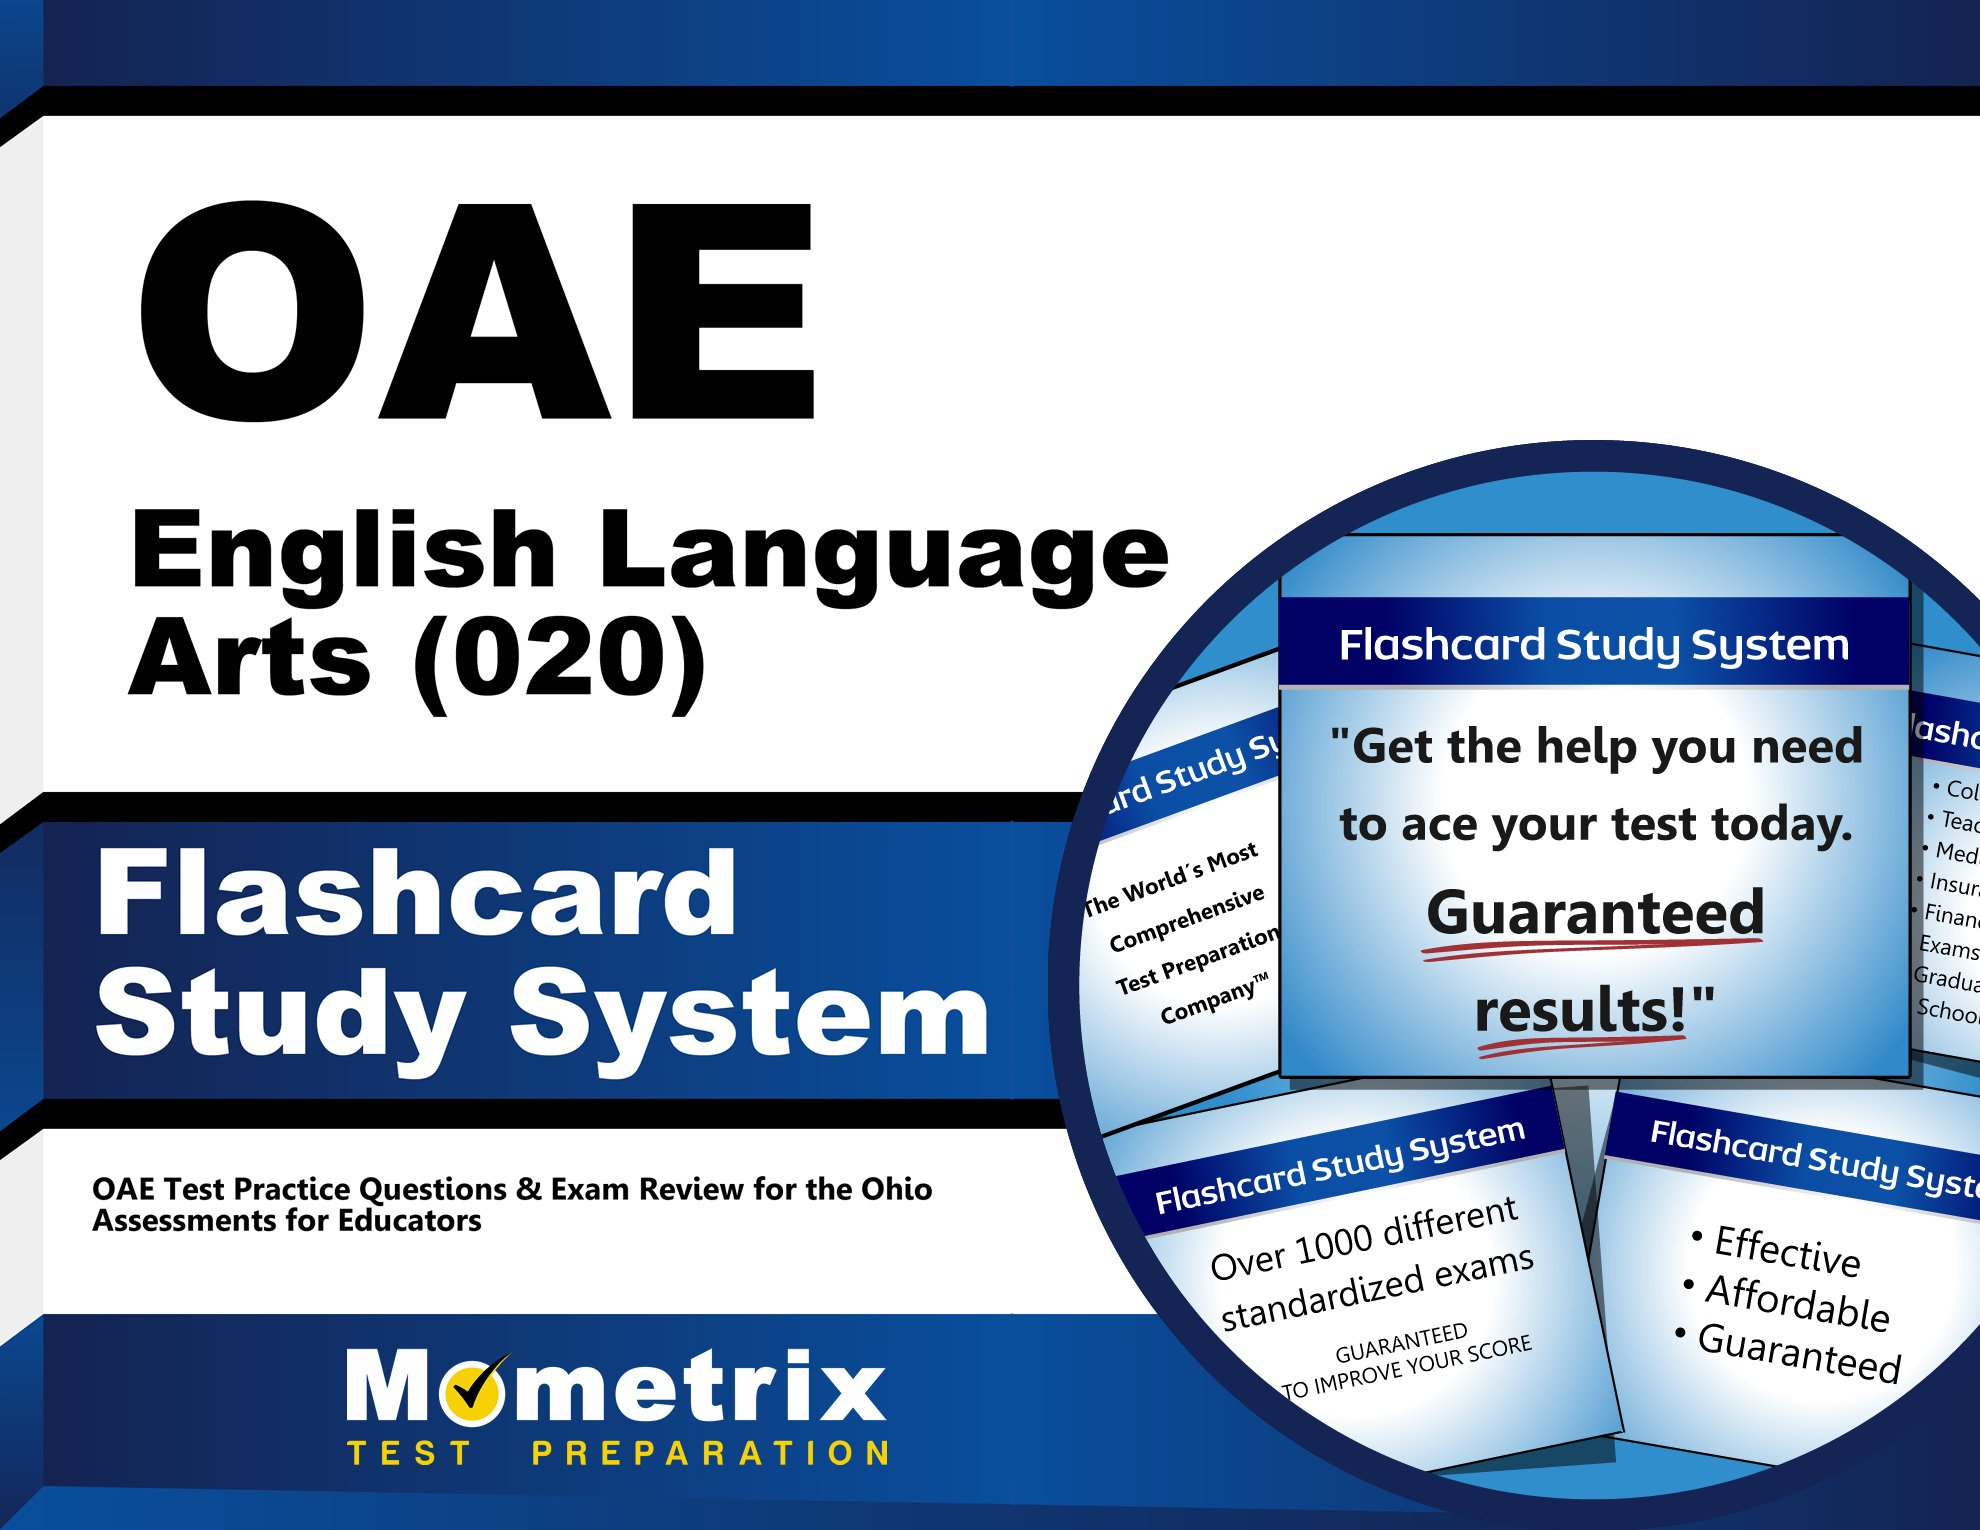 OAE English Language Arts (020) Flashcard Study System: OAE Test Practice Questions & Exam Review for the Ohio Assessments for Educators (Cards) by Mometrix Media LLC